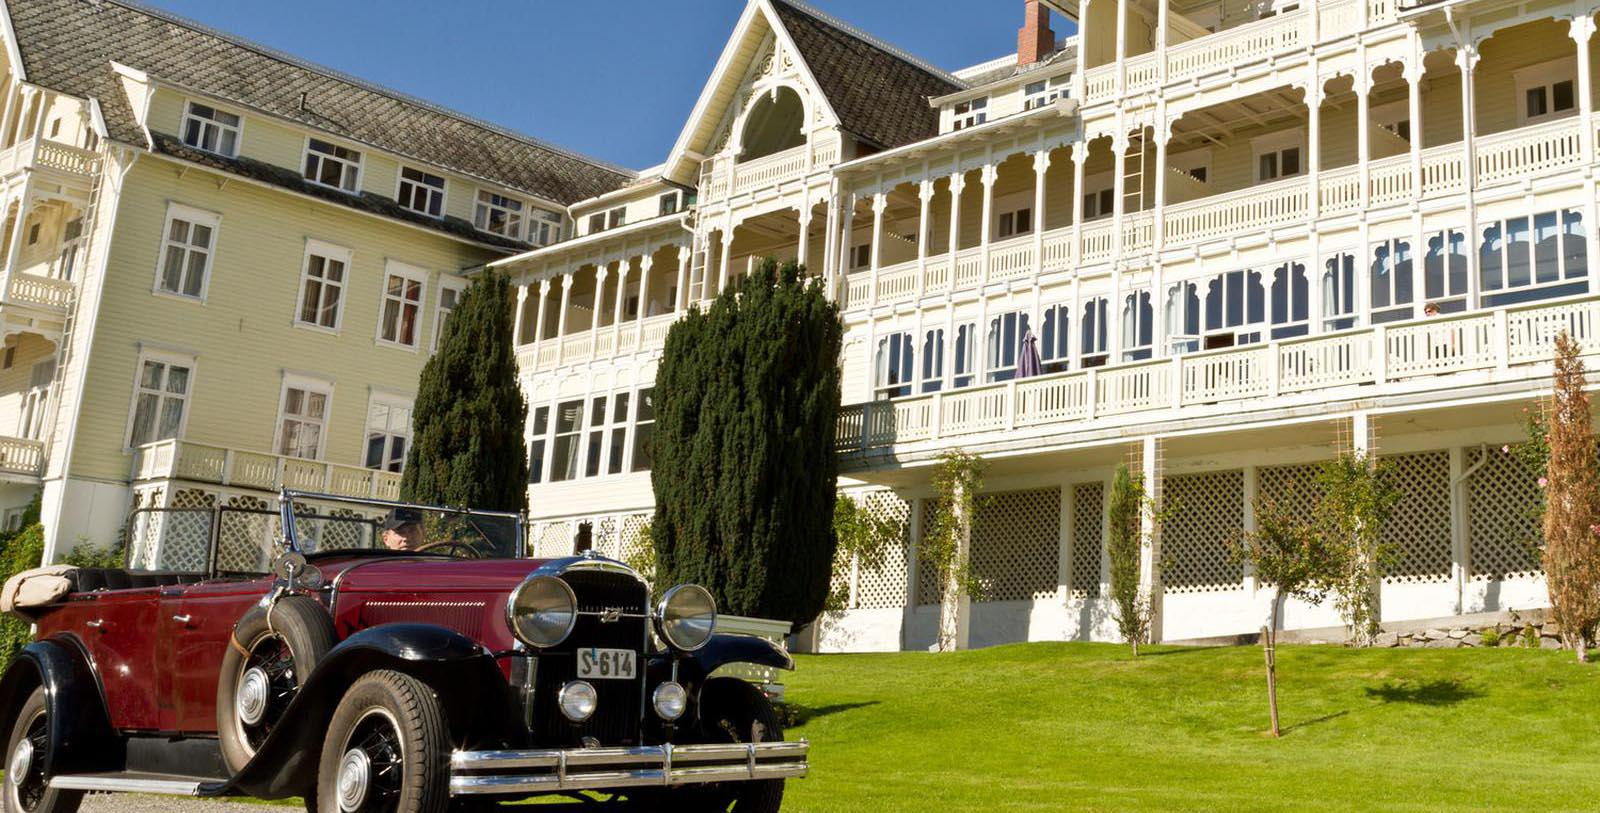 Image of Hotel Exterior with Historic Car Kviknes Hotel, 1752, Member of Historic Hotels Worldwide, in Balestrand, Norway, Special Offers, Discounted Rates, Families, Romantic Escape, Honeymoons, Anniversaries, Reunions